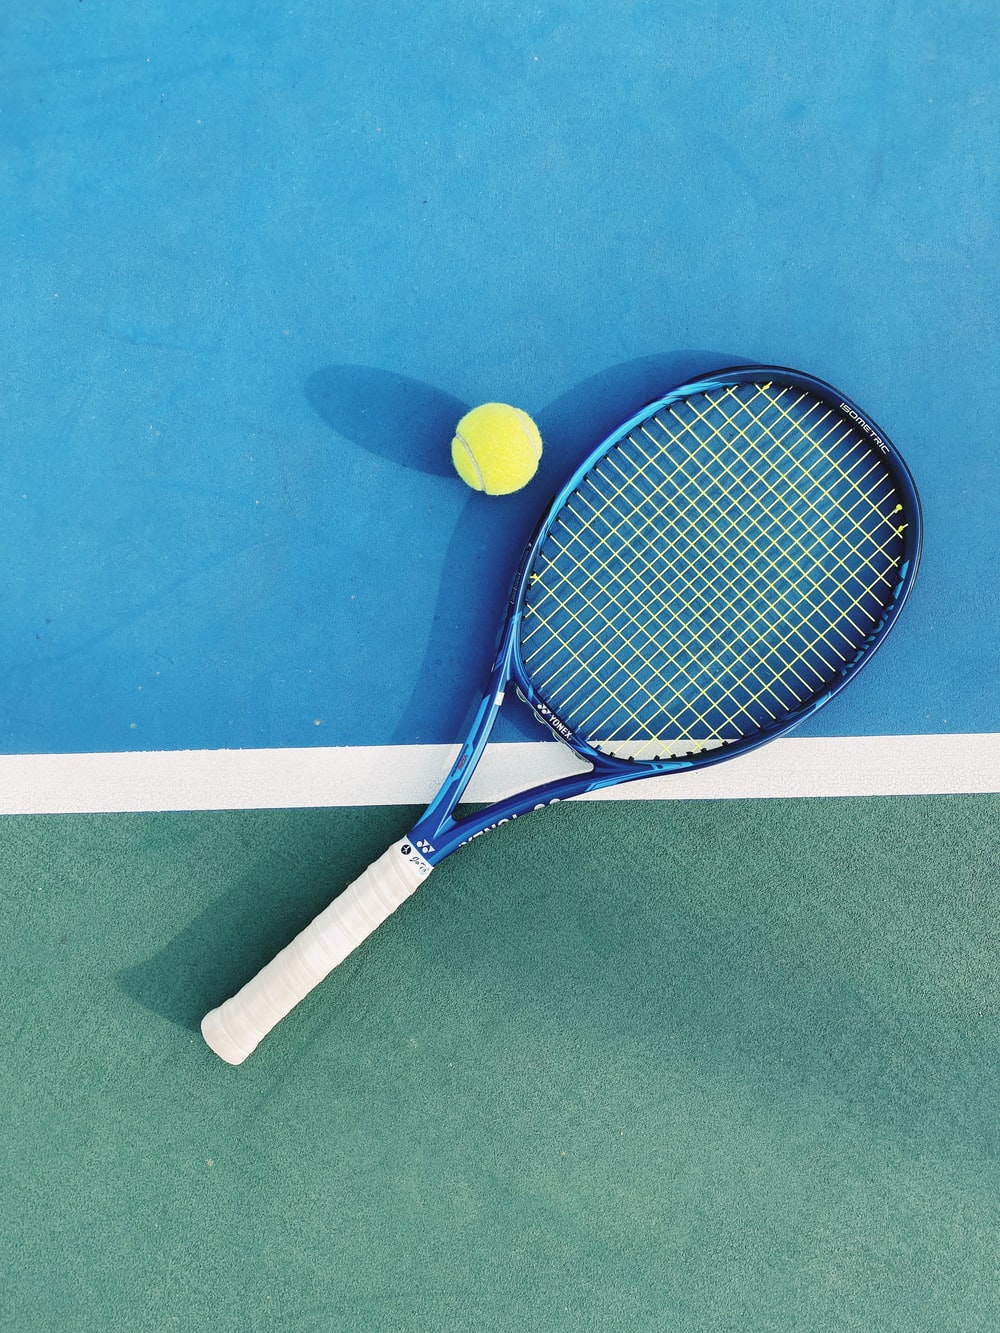 white and blue tennis racket